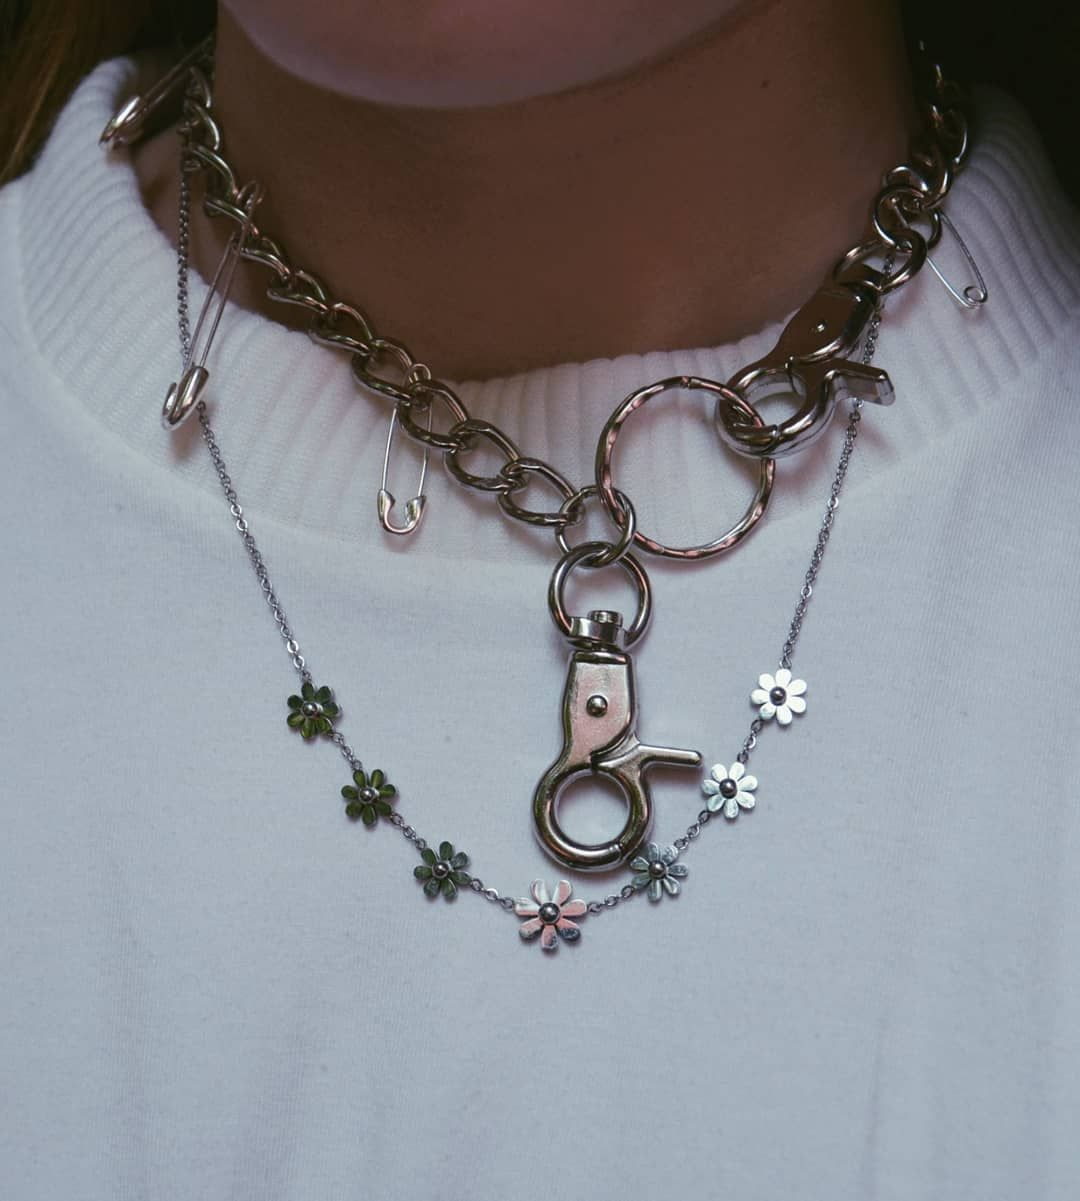 Silver chain necklace with flowers and safety pins